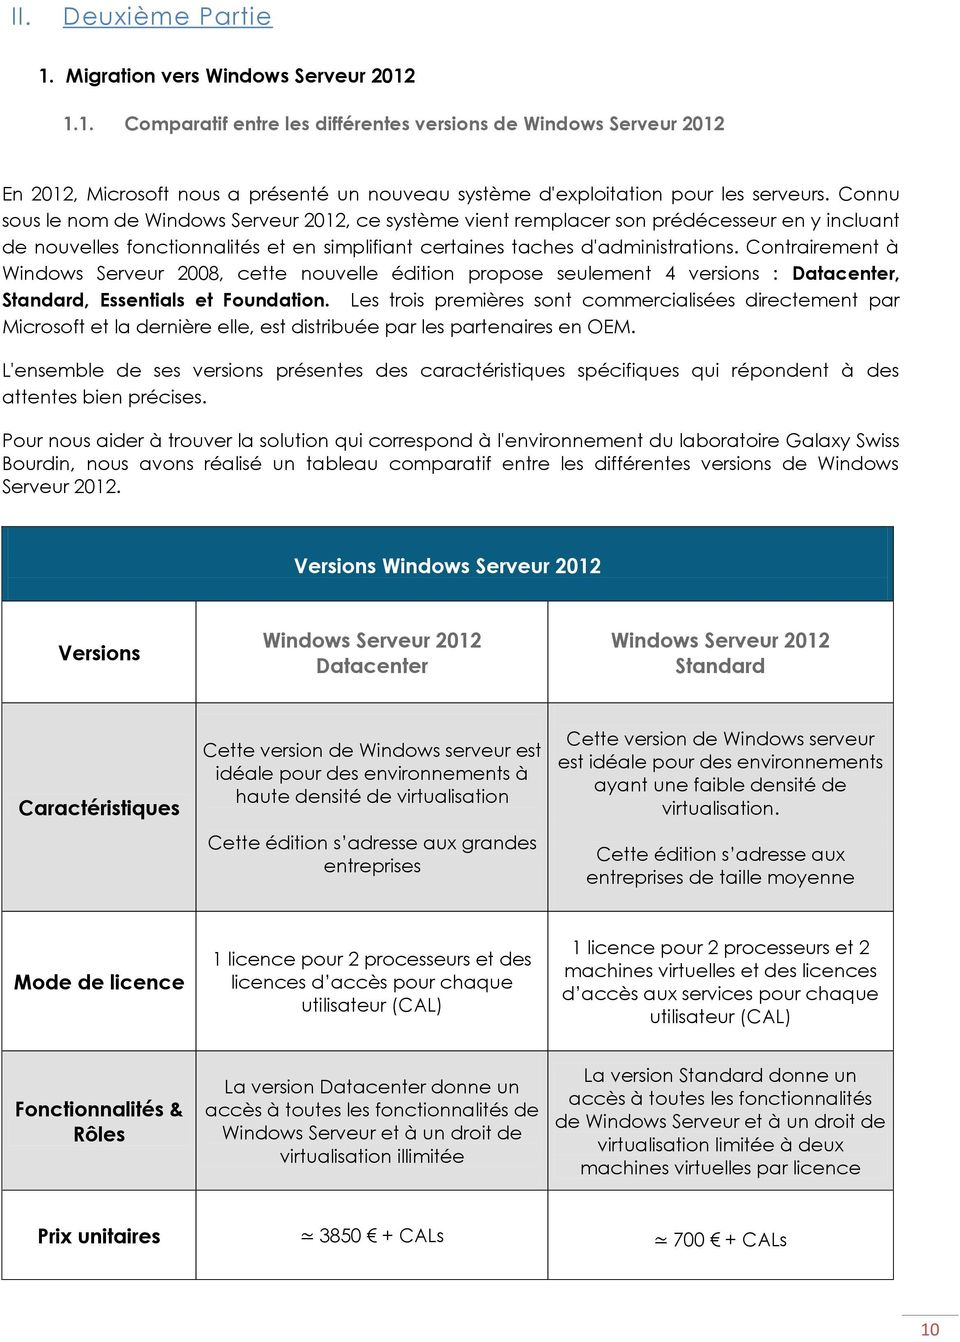 Contrairement à Windows Serveur 2008, cette nouvelle édition propose seulement 4 versions : Datacenter, Standard, Essentials et Foundation.